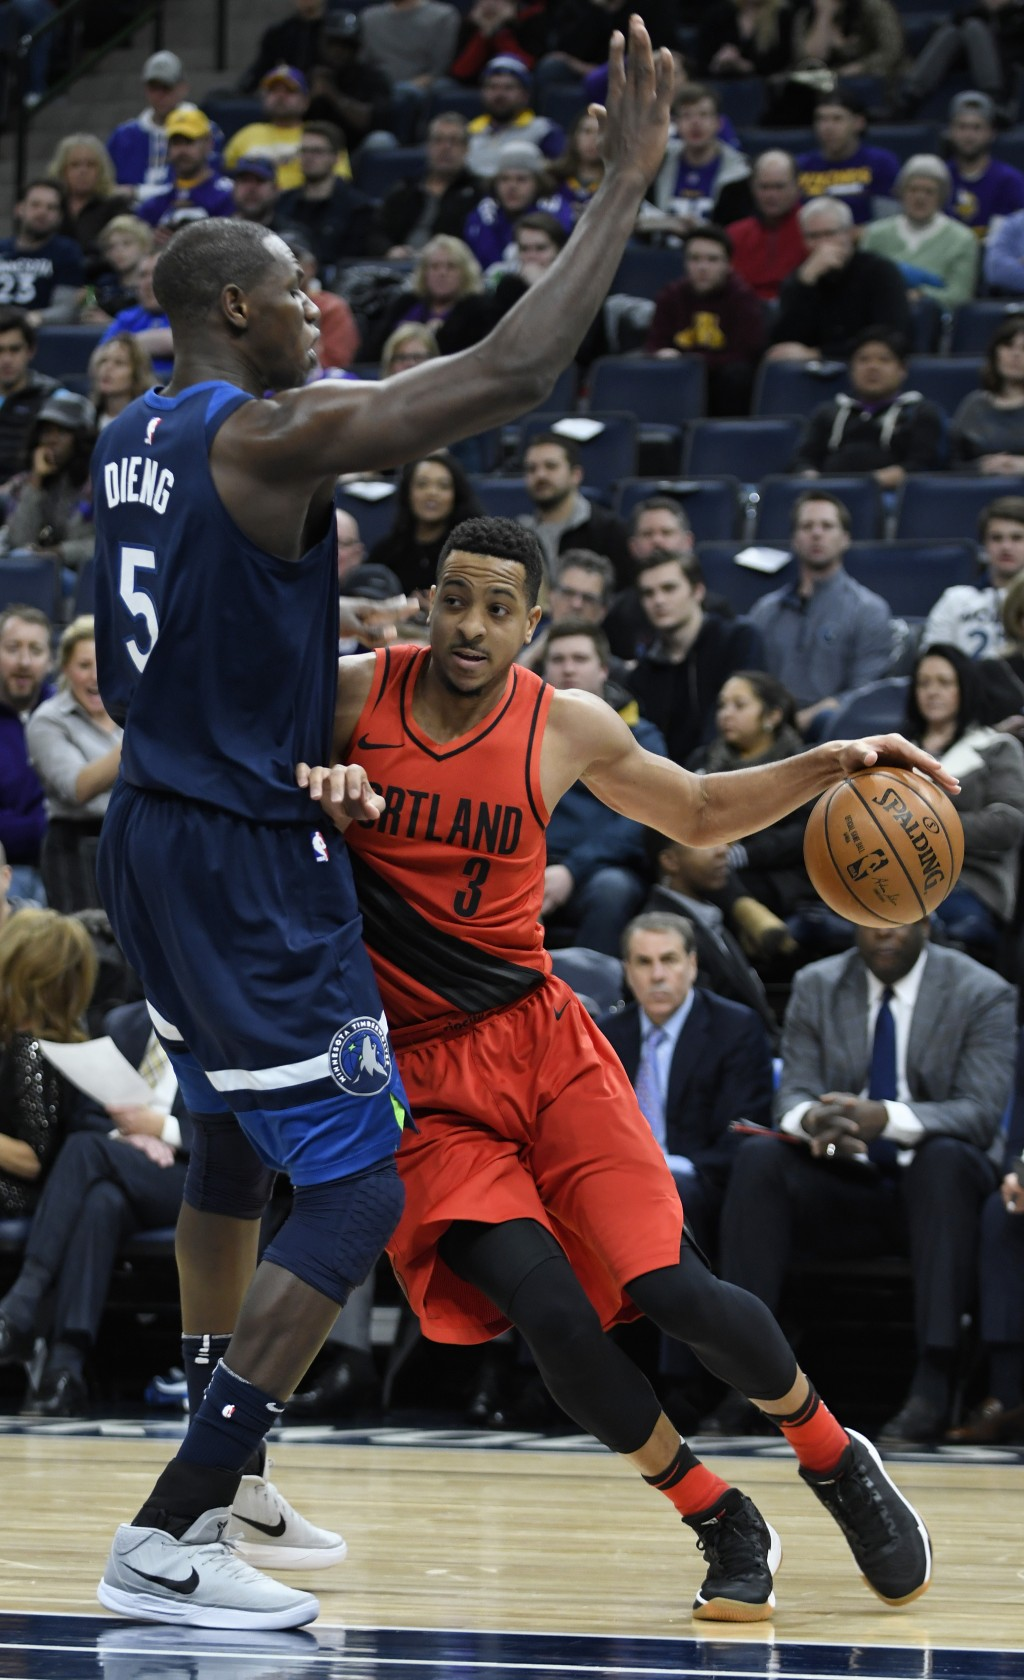 Portland Trail Blazers' C.J. McCollum, right, attempts to drive around the Minnesota Timberwolves' Gorgul Dieng, left, in the half of an NBA basketbal...